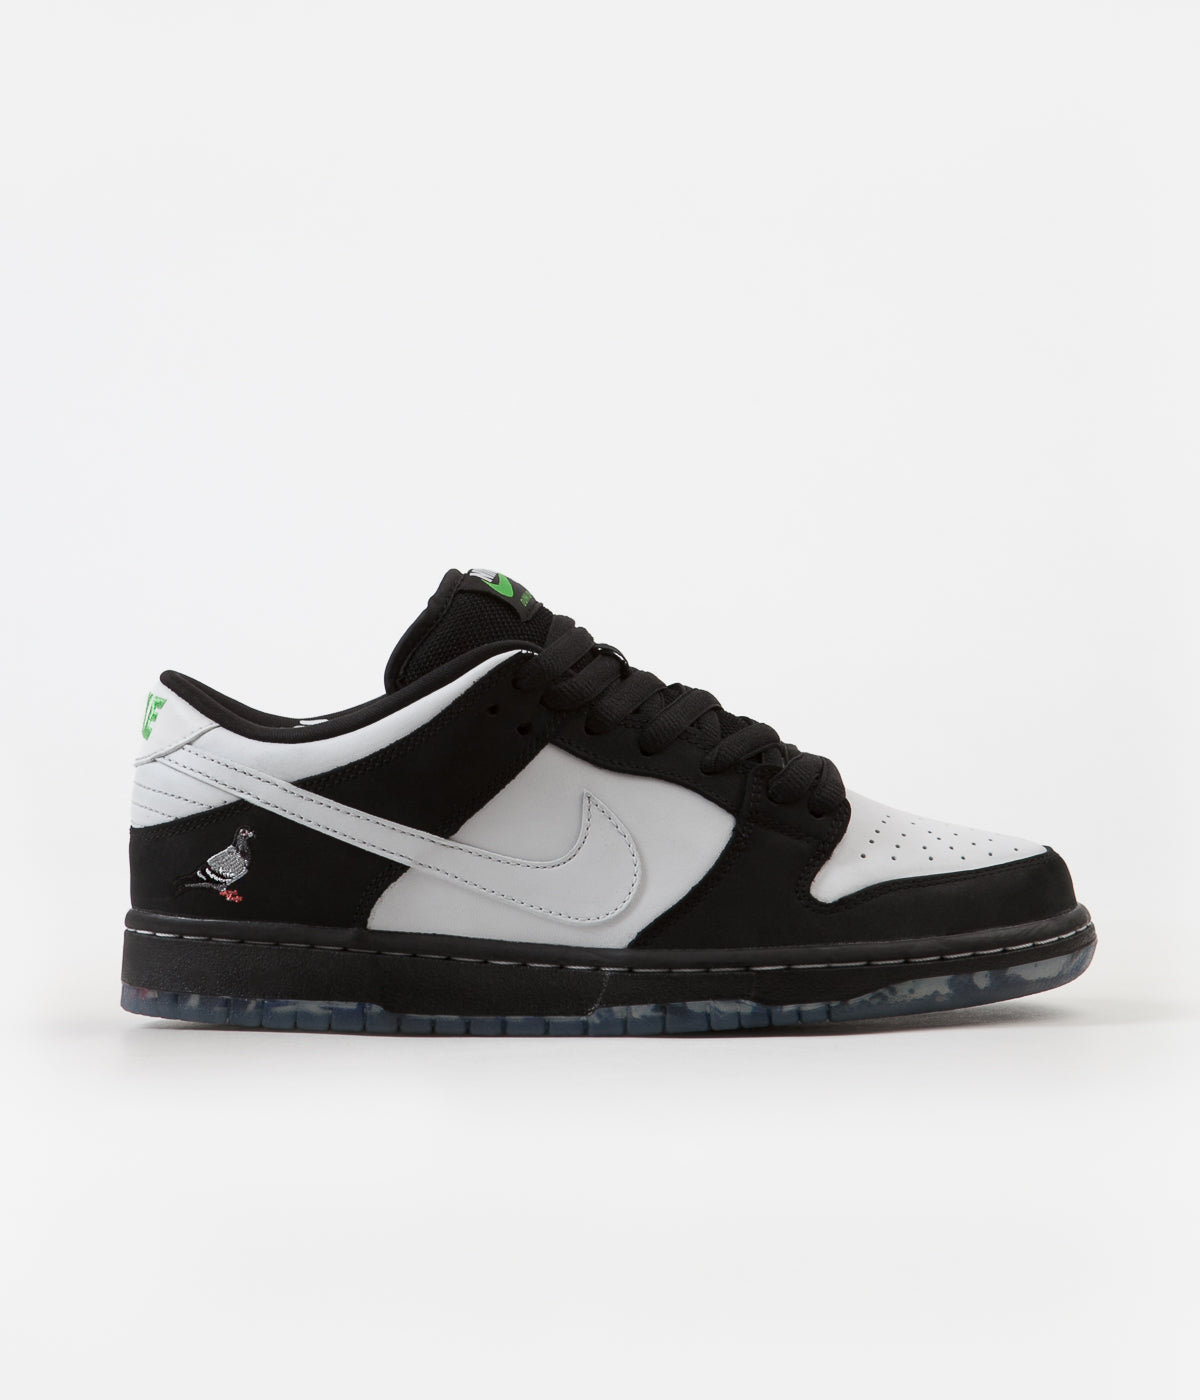 the best attitude 10dd0 71025 ... Nike SB Dunk Low Pro OG  Panda Pigeon  Shoes - Black   White ...